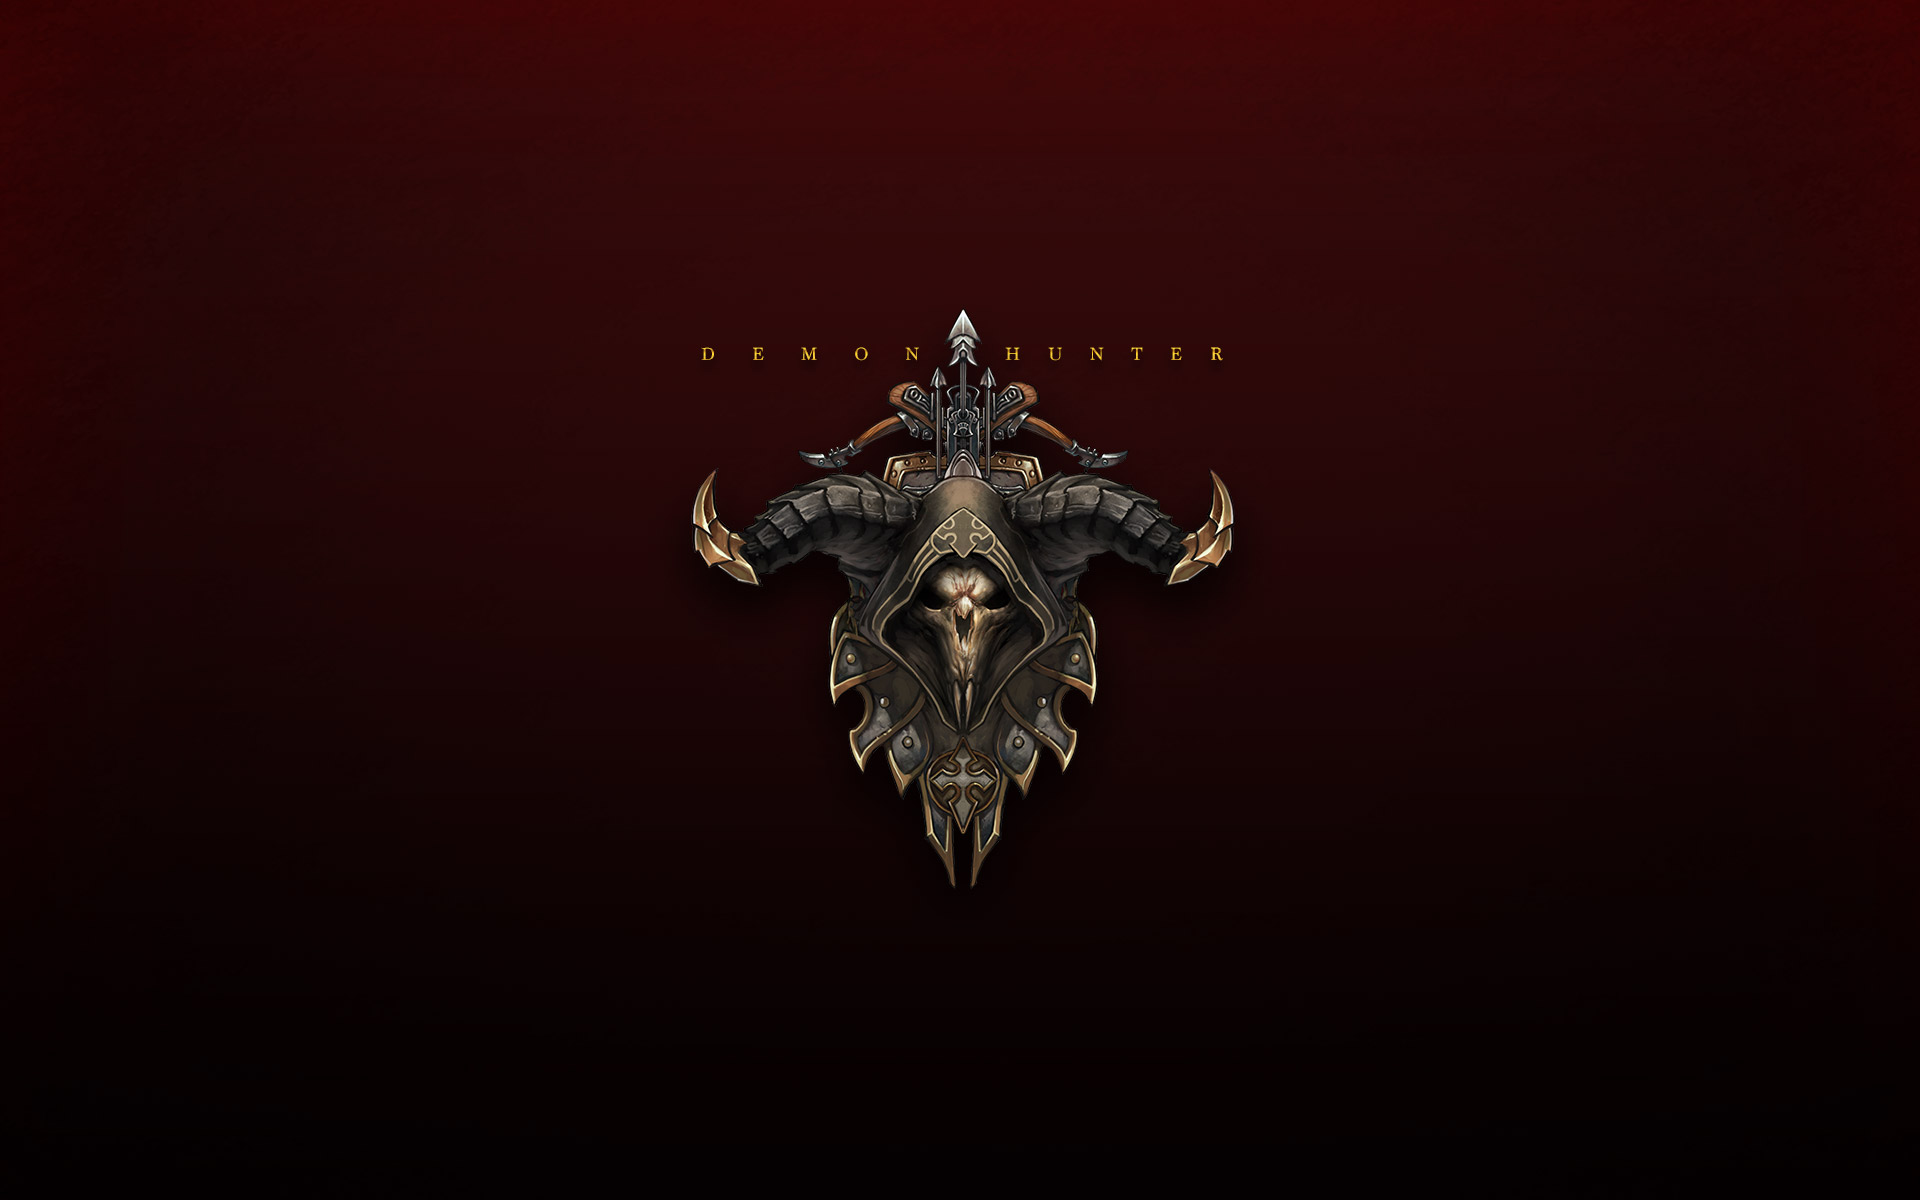 Demon Hunter Emblem Full HD Wallpaper And Background Image